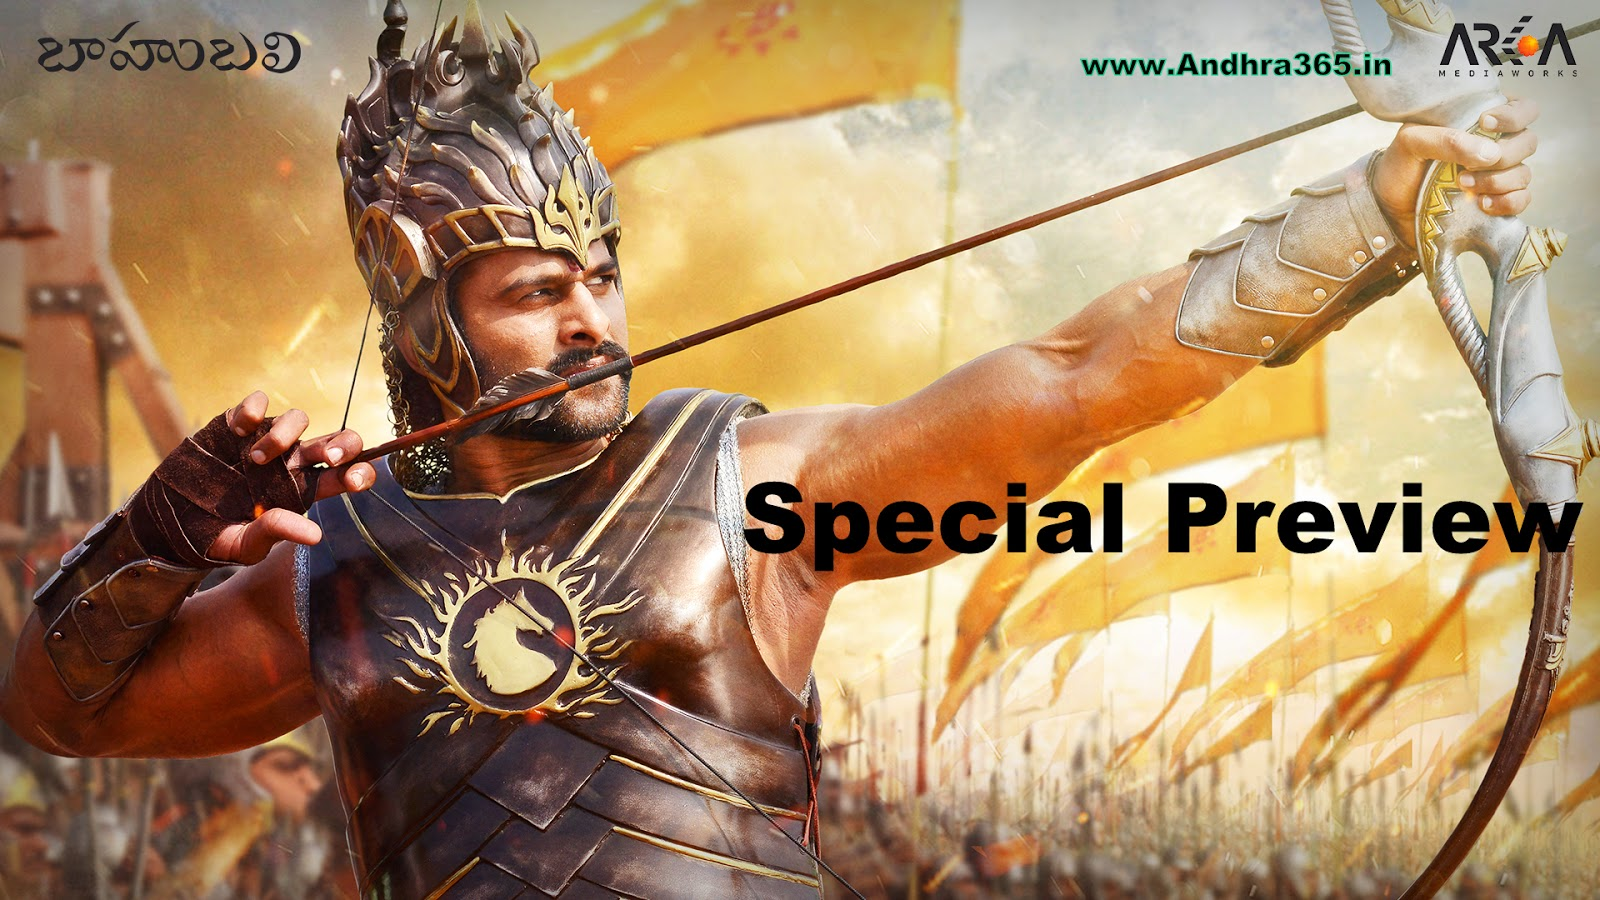 Baahubali Special Preview on 21st